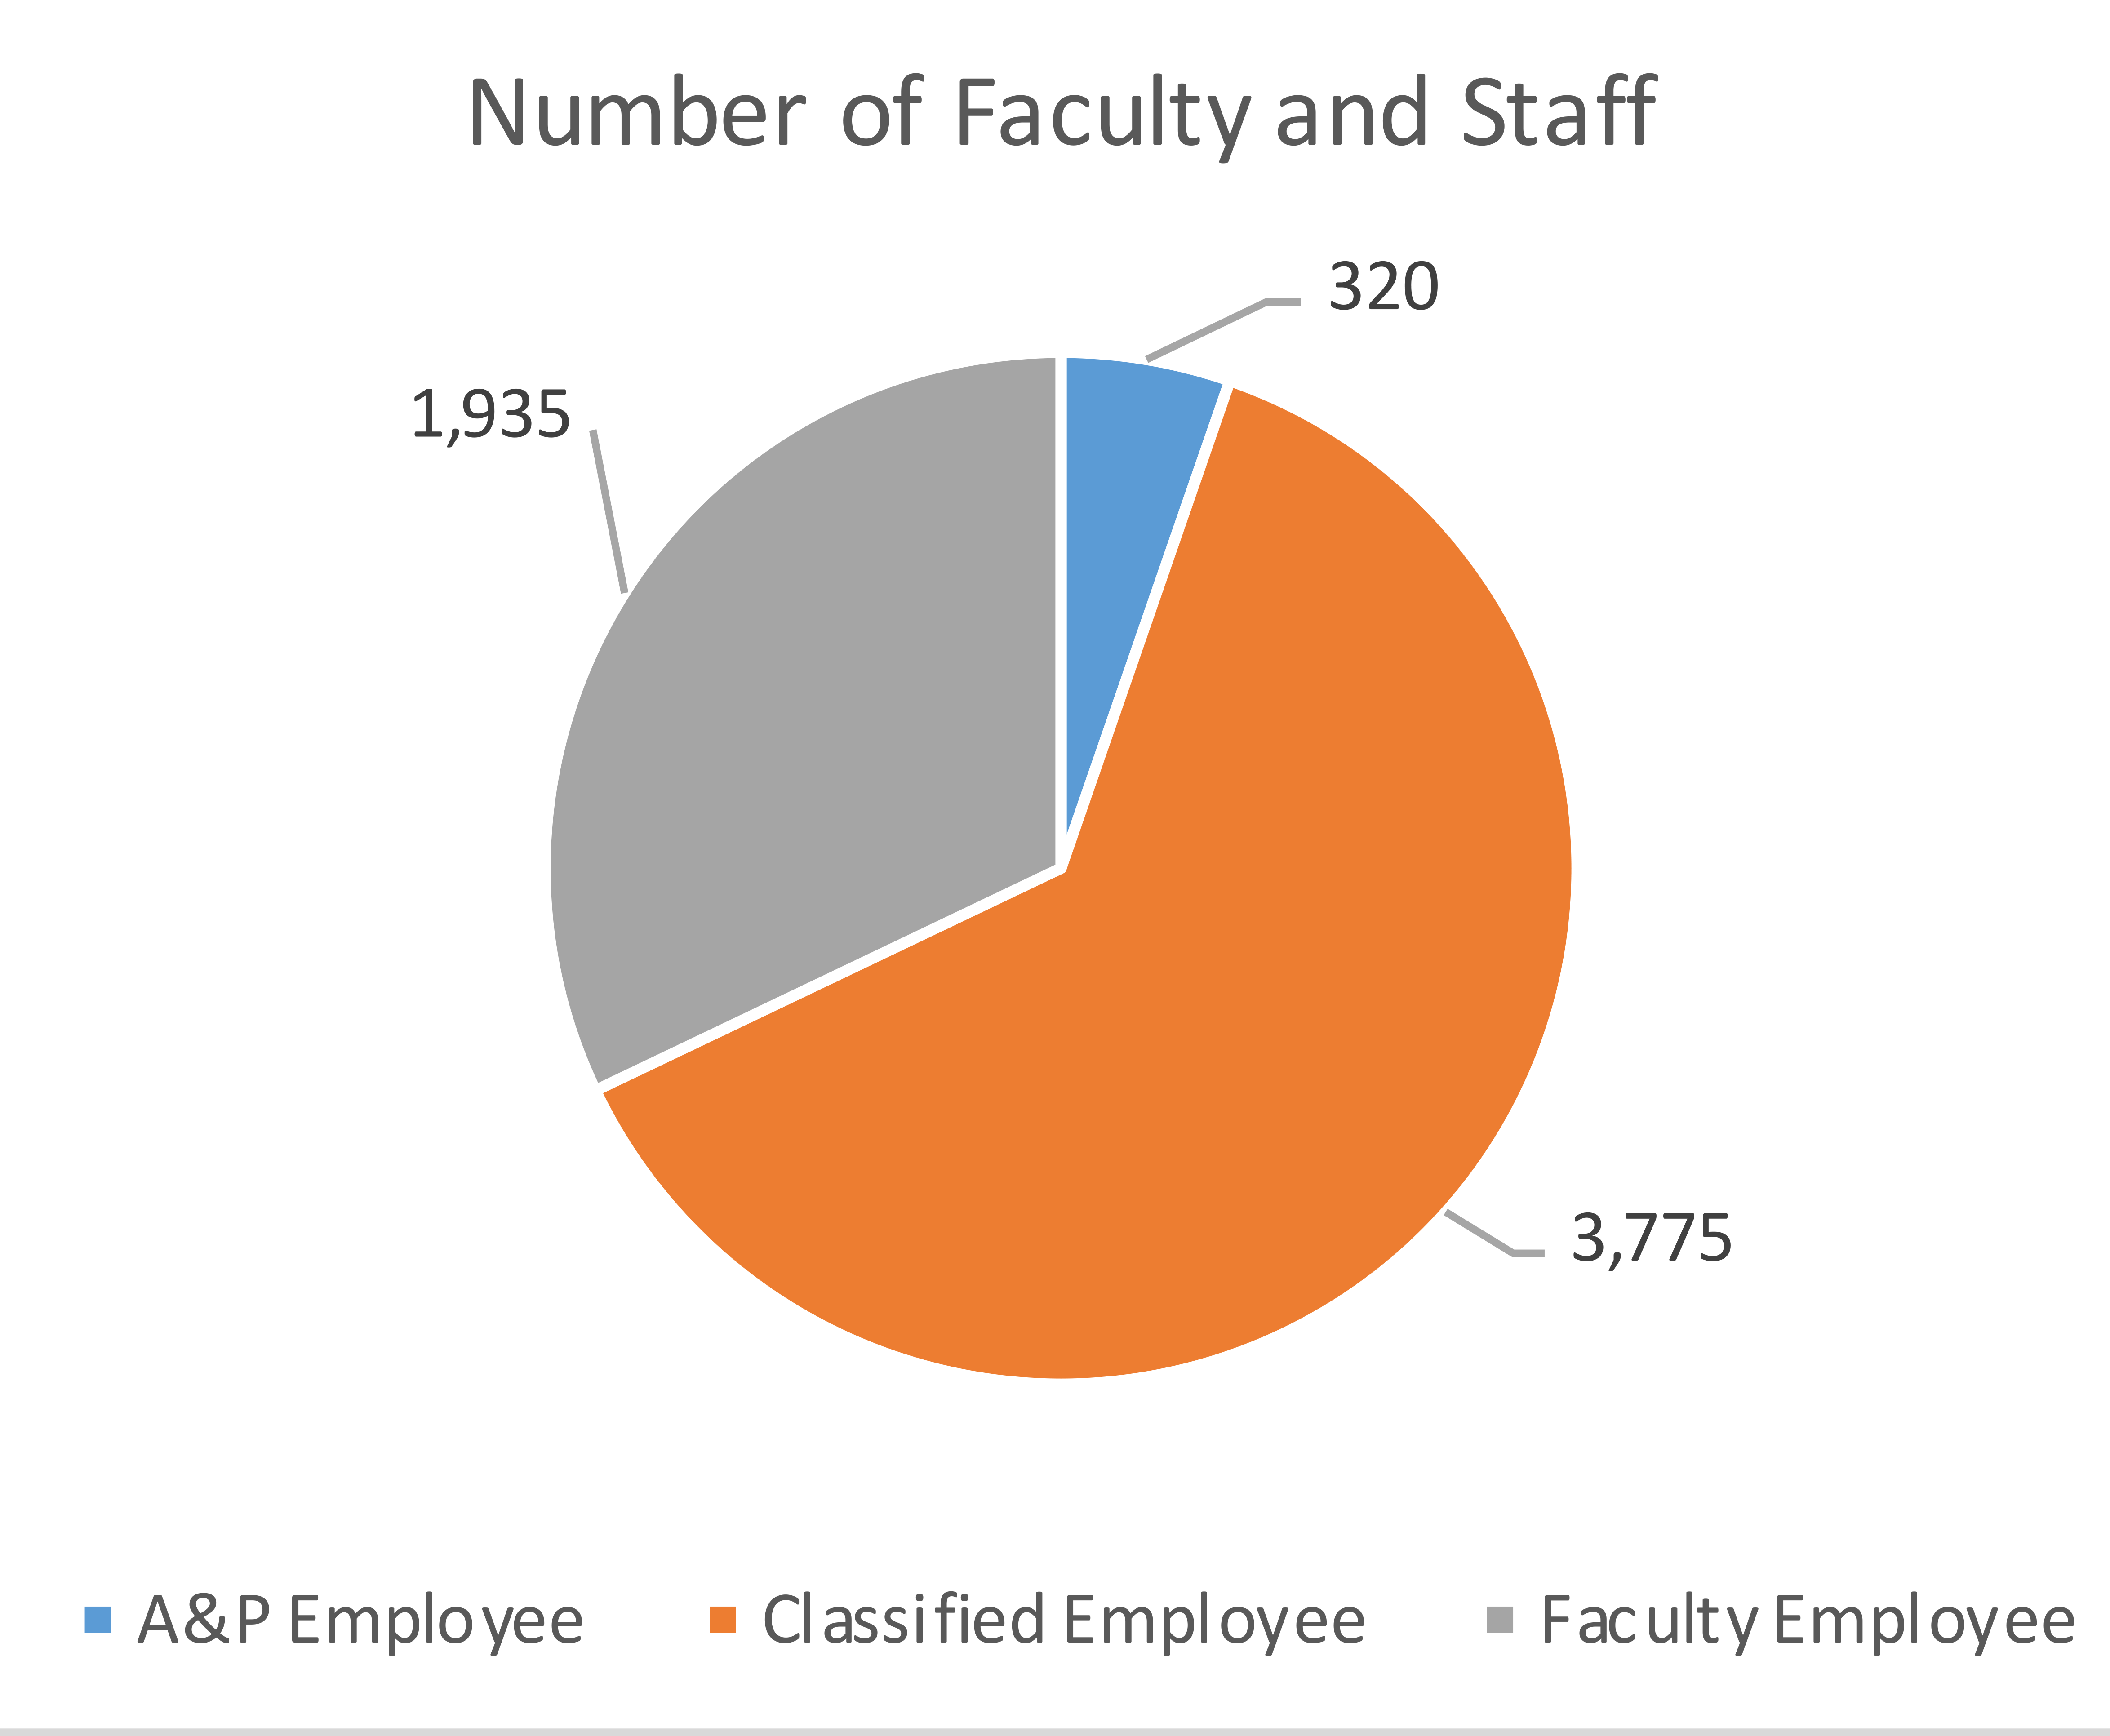 Number of Faculty and Staff